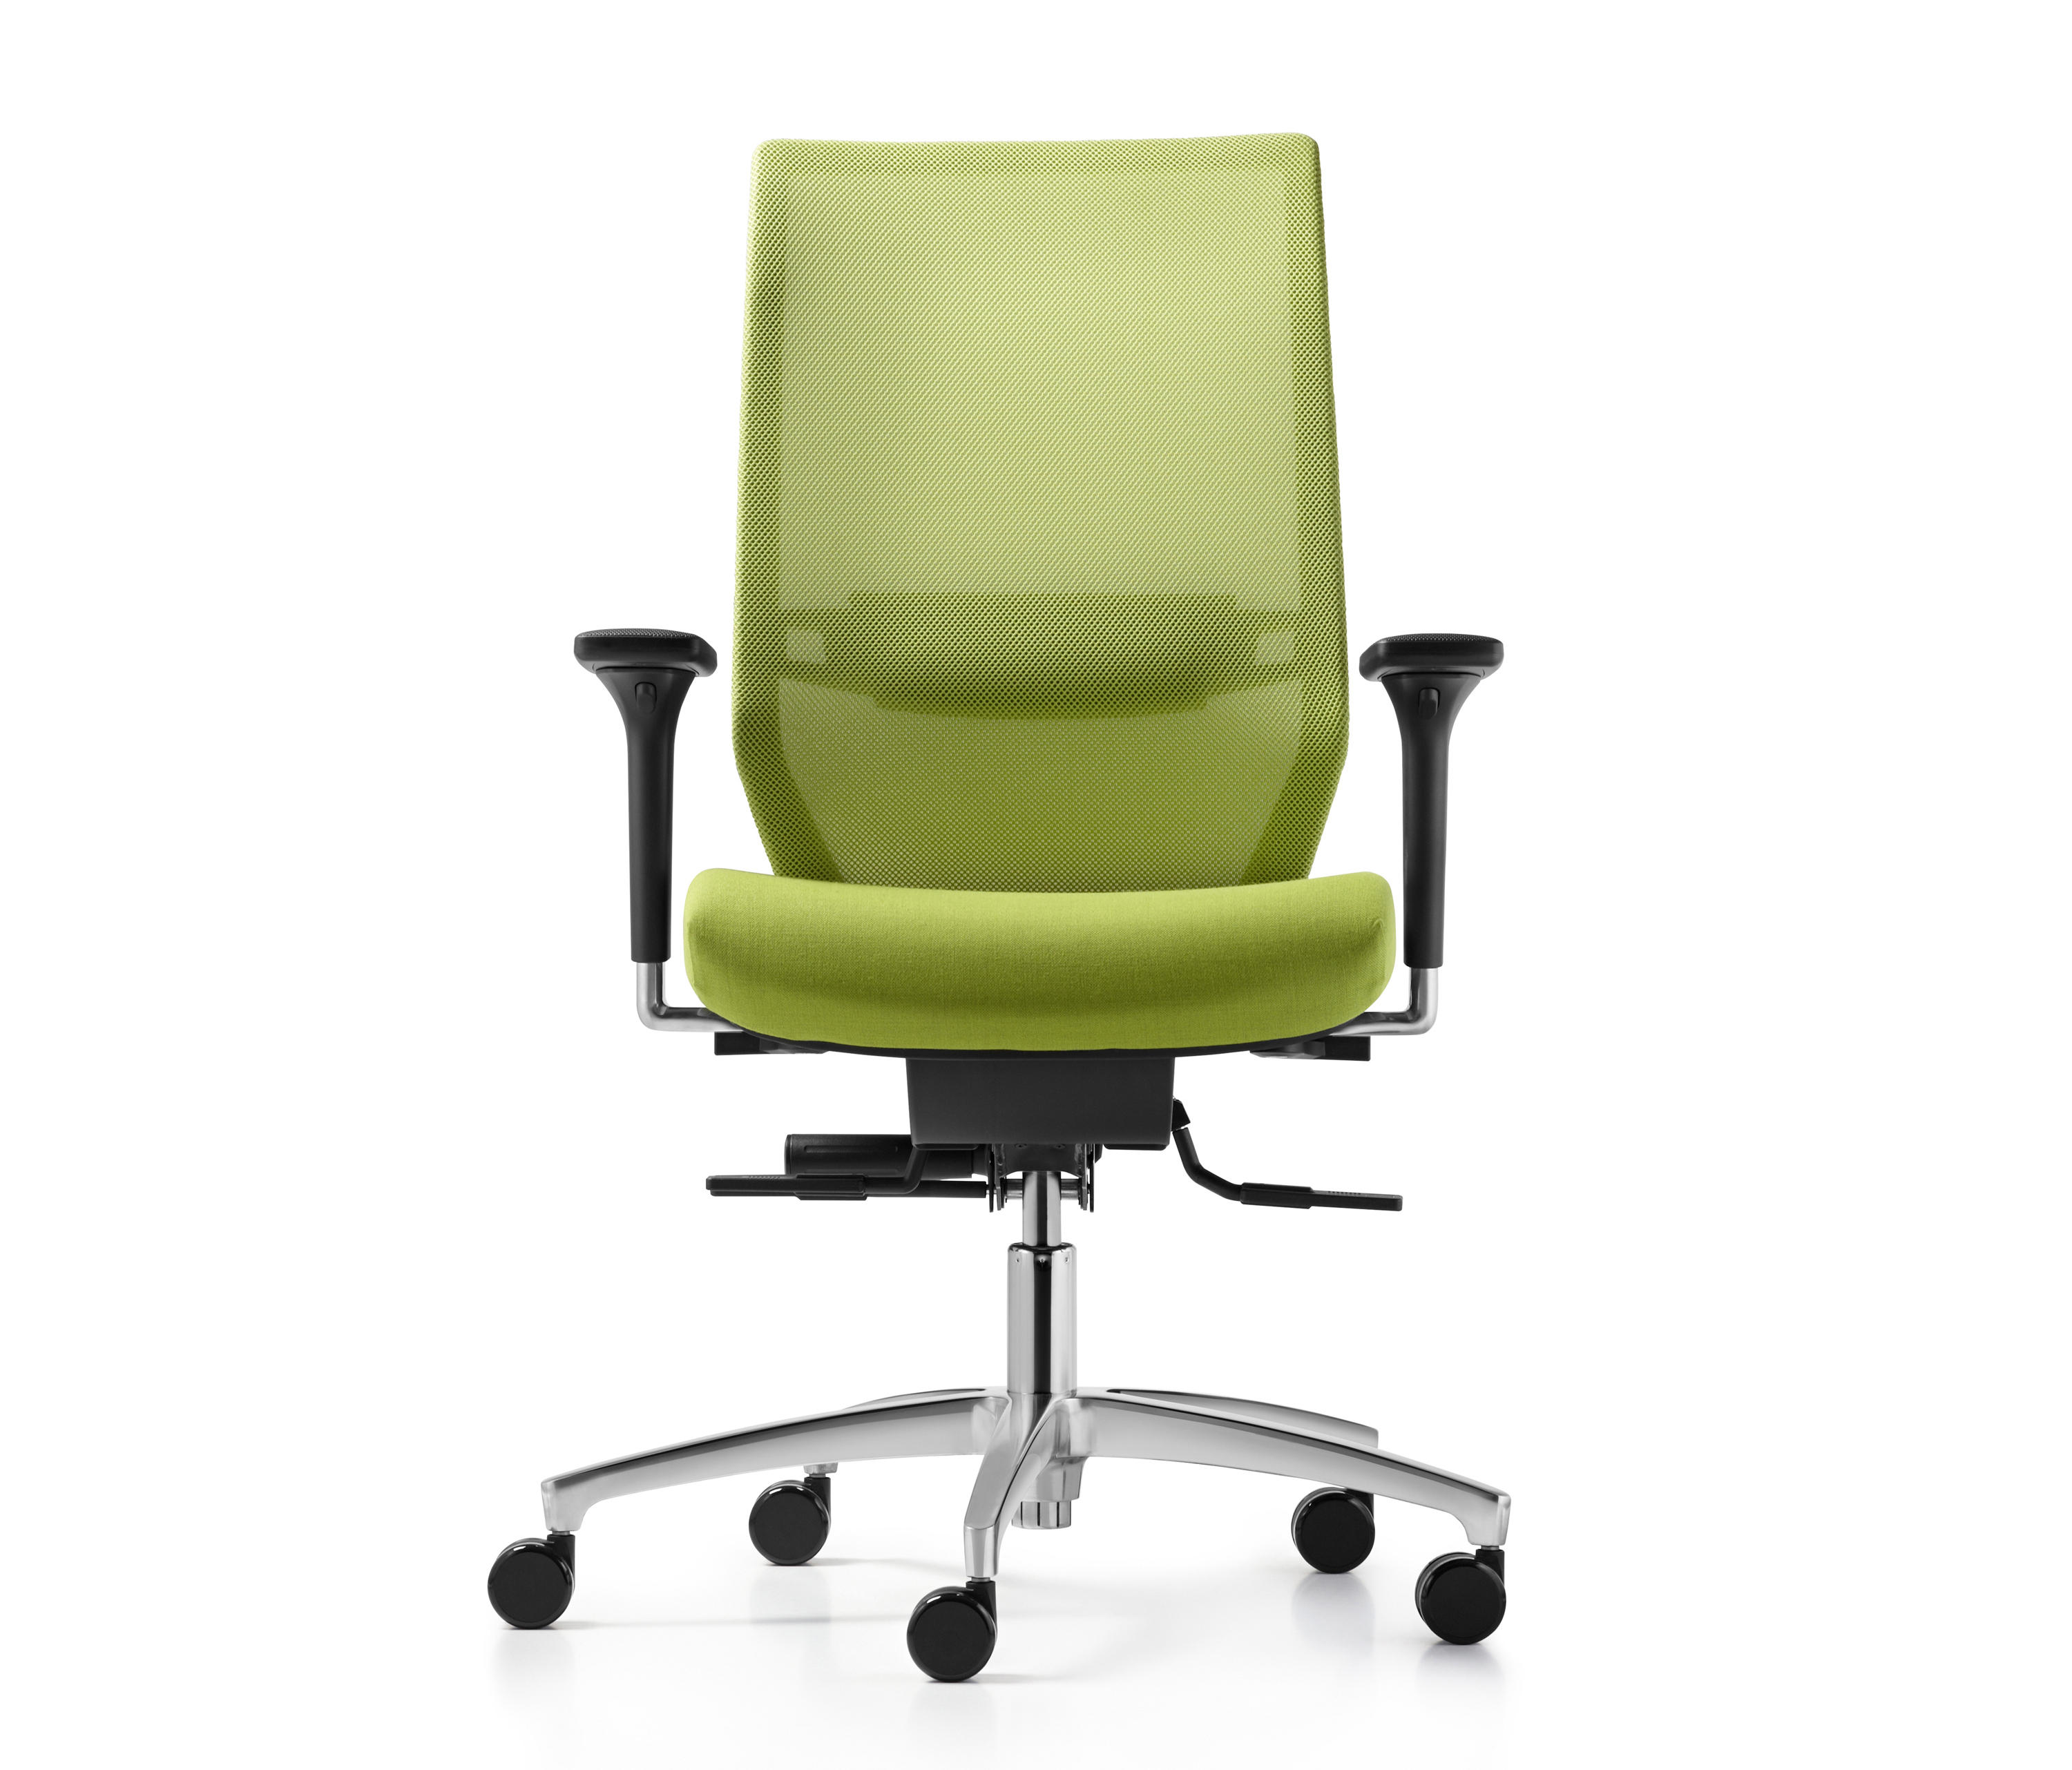 TASK CHAIRS WITH LUMBAR SUPPORT FIXED High quality designer TASK